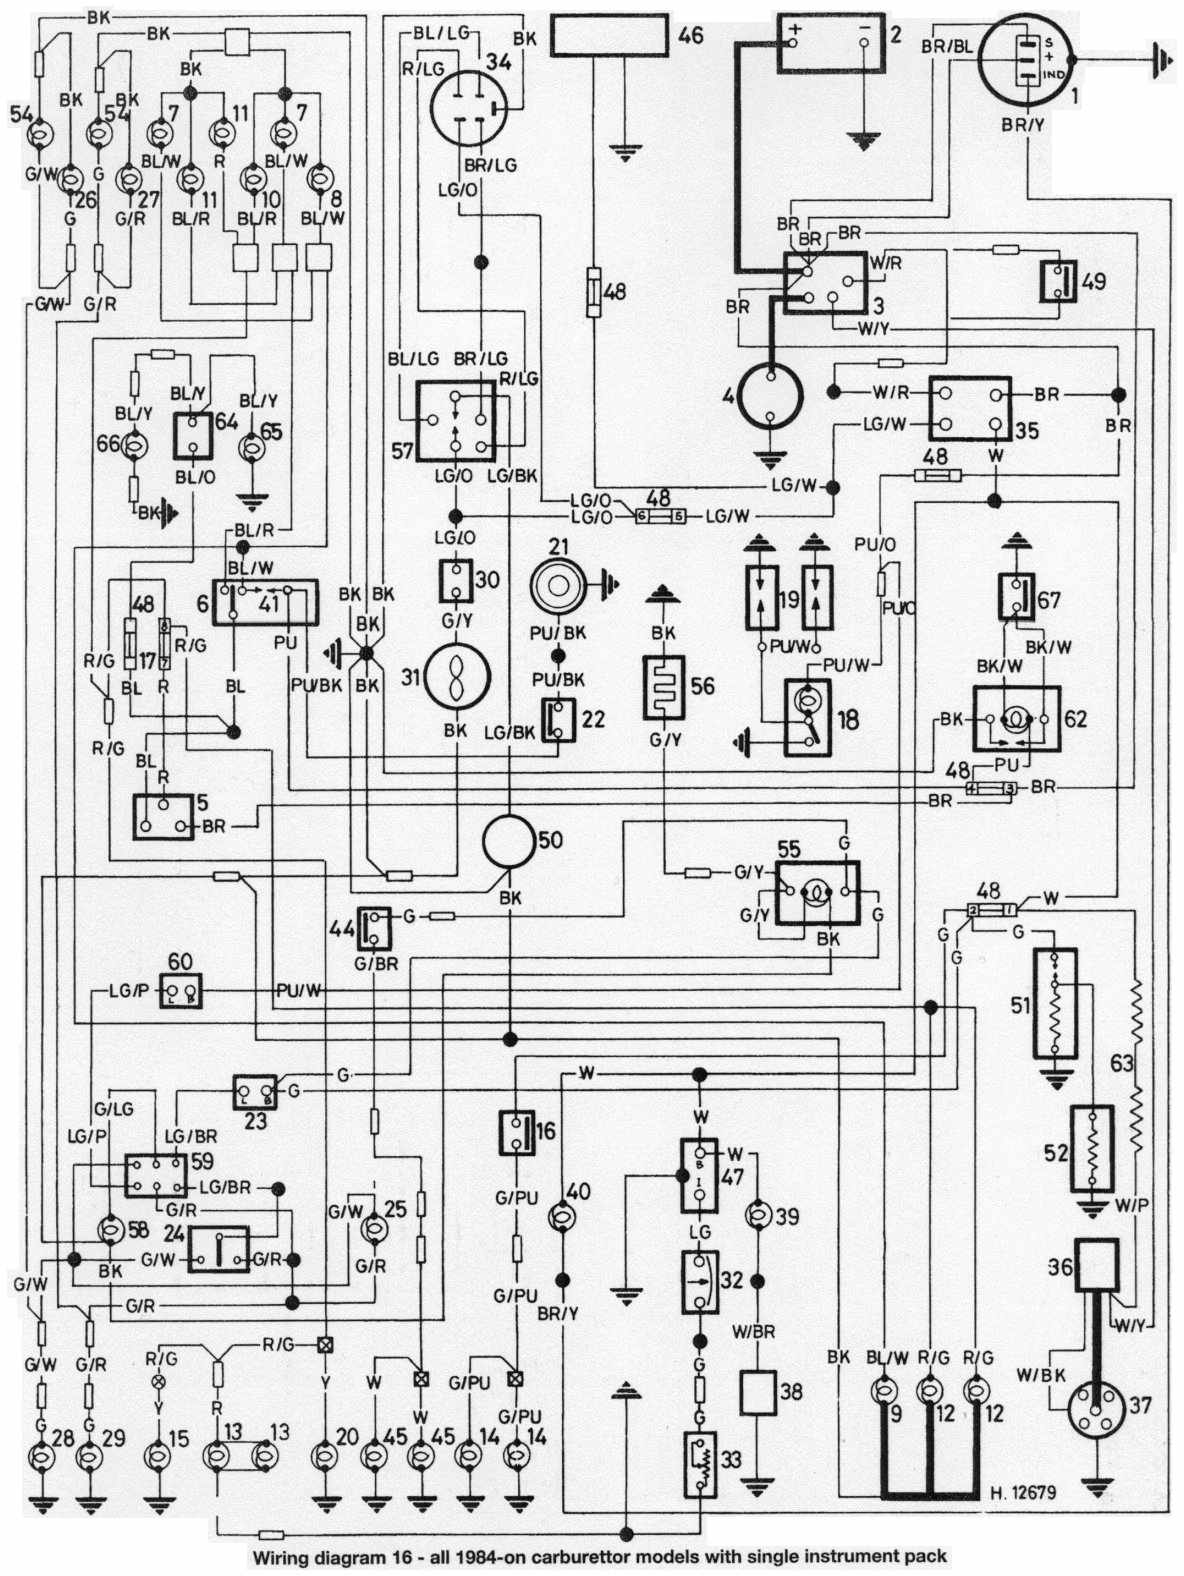 mini wiring diagram pdf 1985 austin mini wiring diagram - wiring diagram